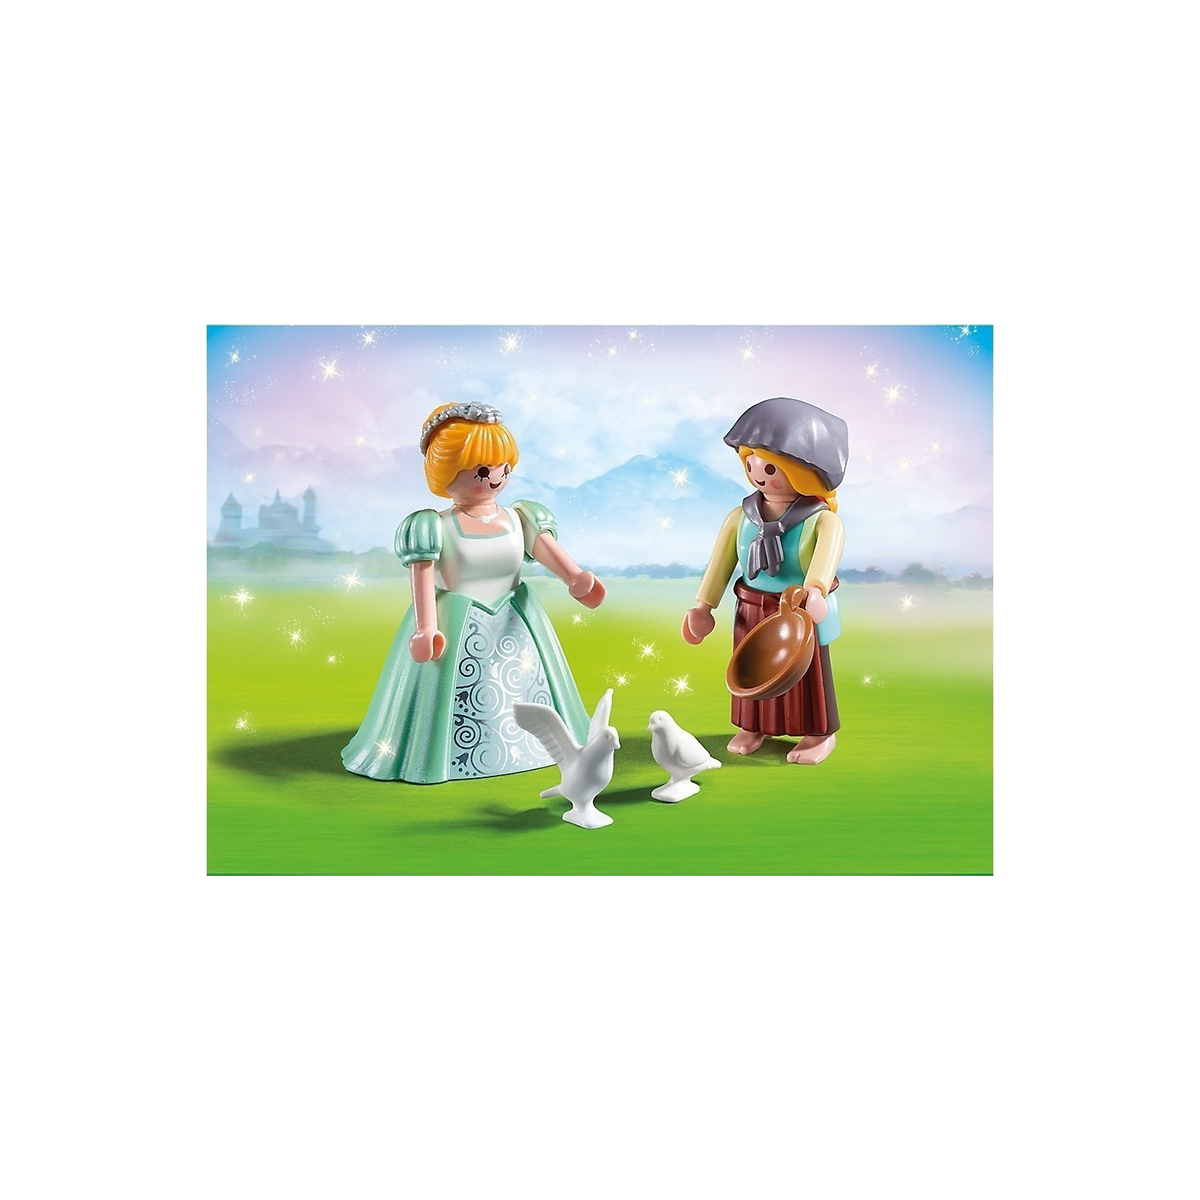 PLAYMOBIL DUO PACK ΠΡΙΓΚΙΠΙΣΣΑ ΚΑΙ ΥΠΗΡΕΤΡΙΑ 6843